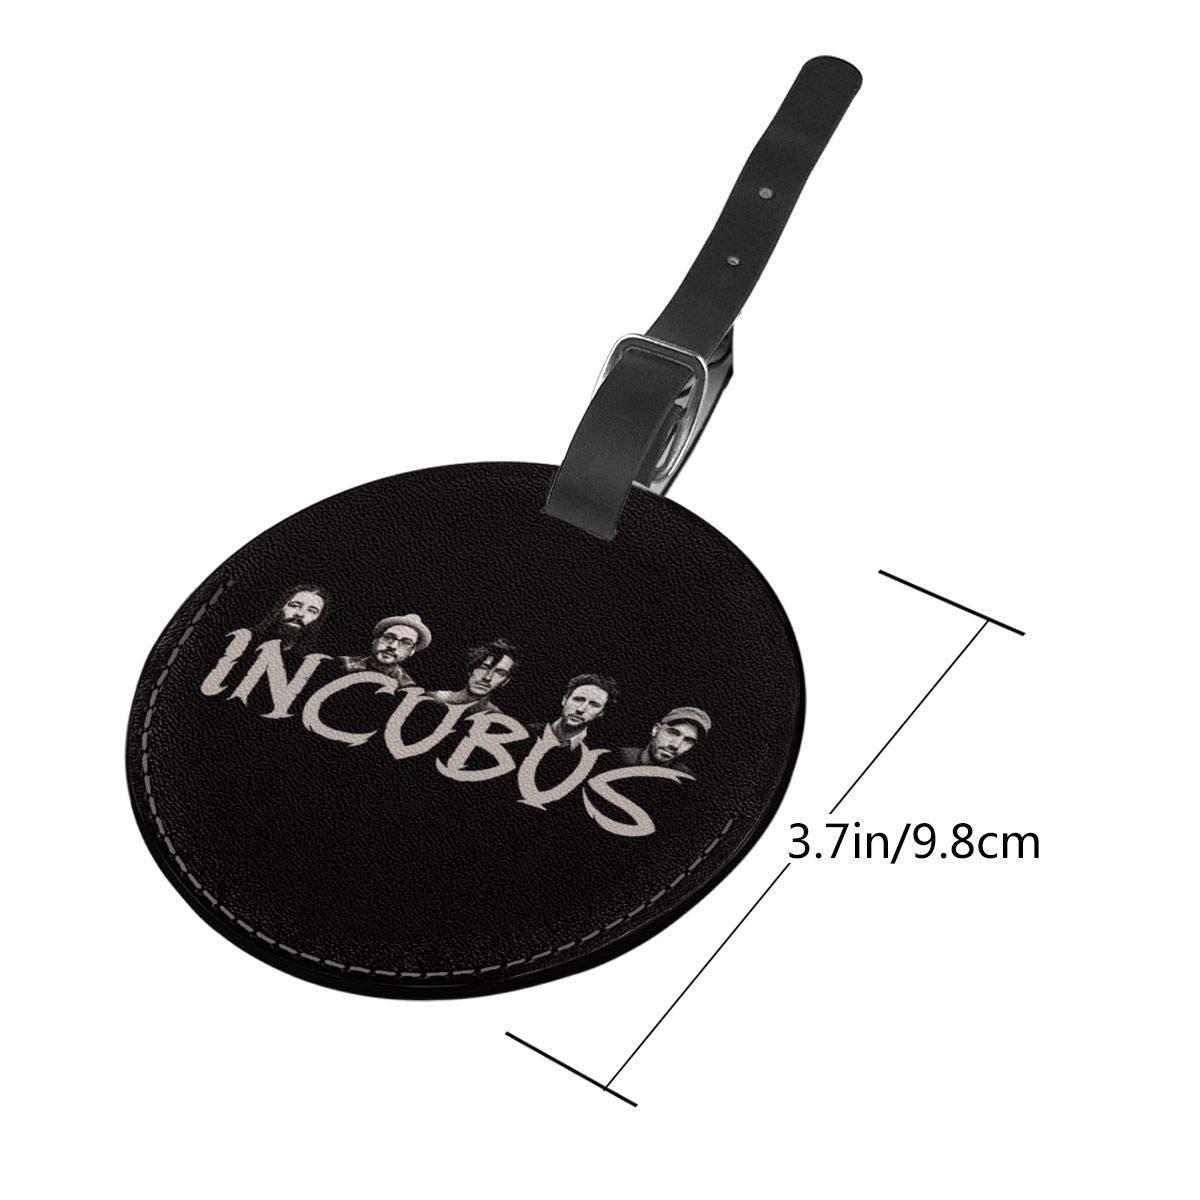 Incubus Logo Travel Leather Round Luggage Tags Suitcase Labels Bag